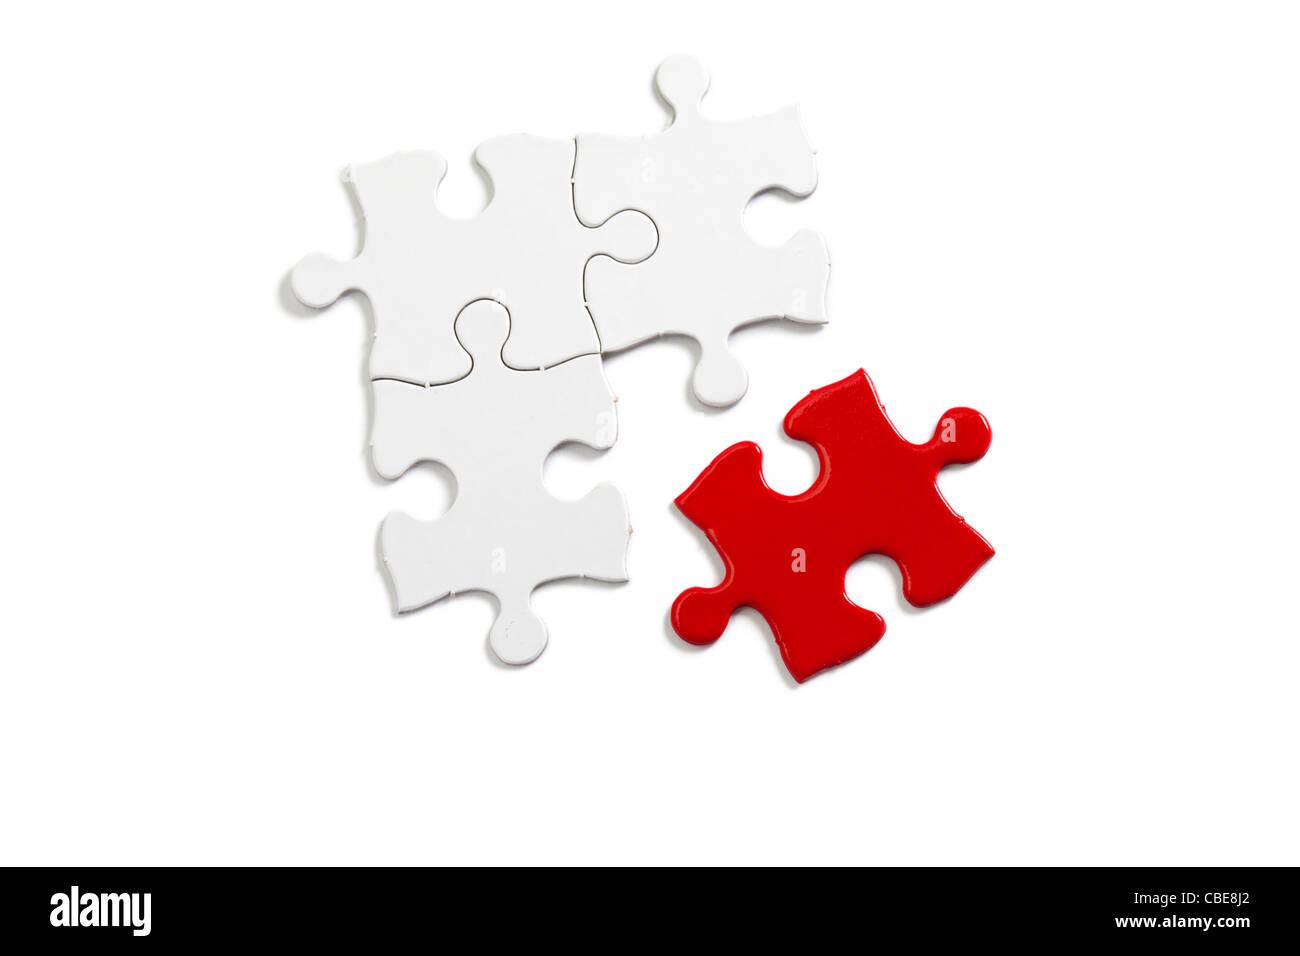 Red Puzzle, business concept of Solution - Stock Image